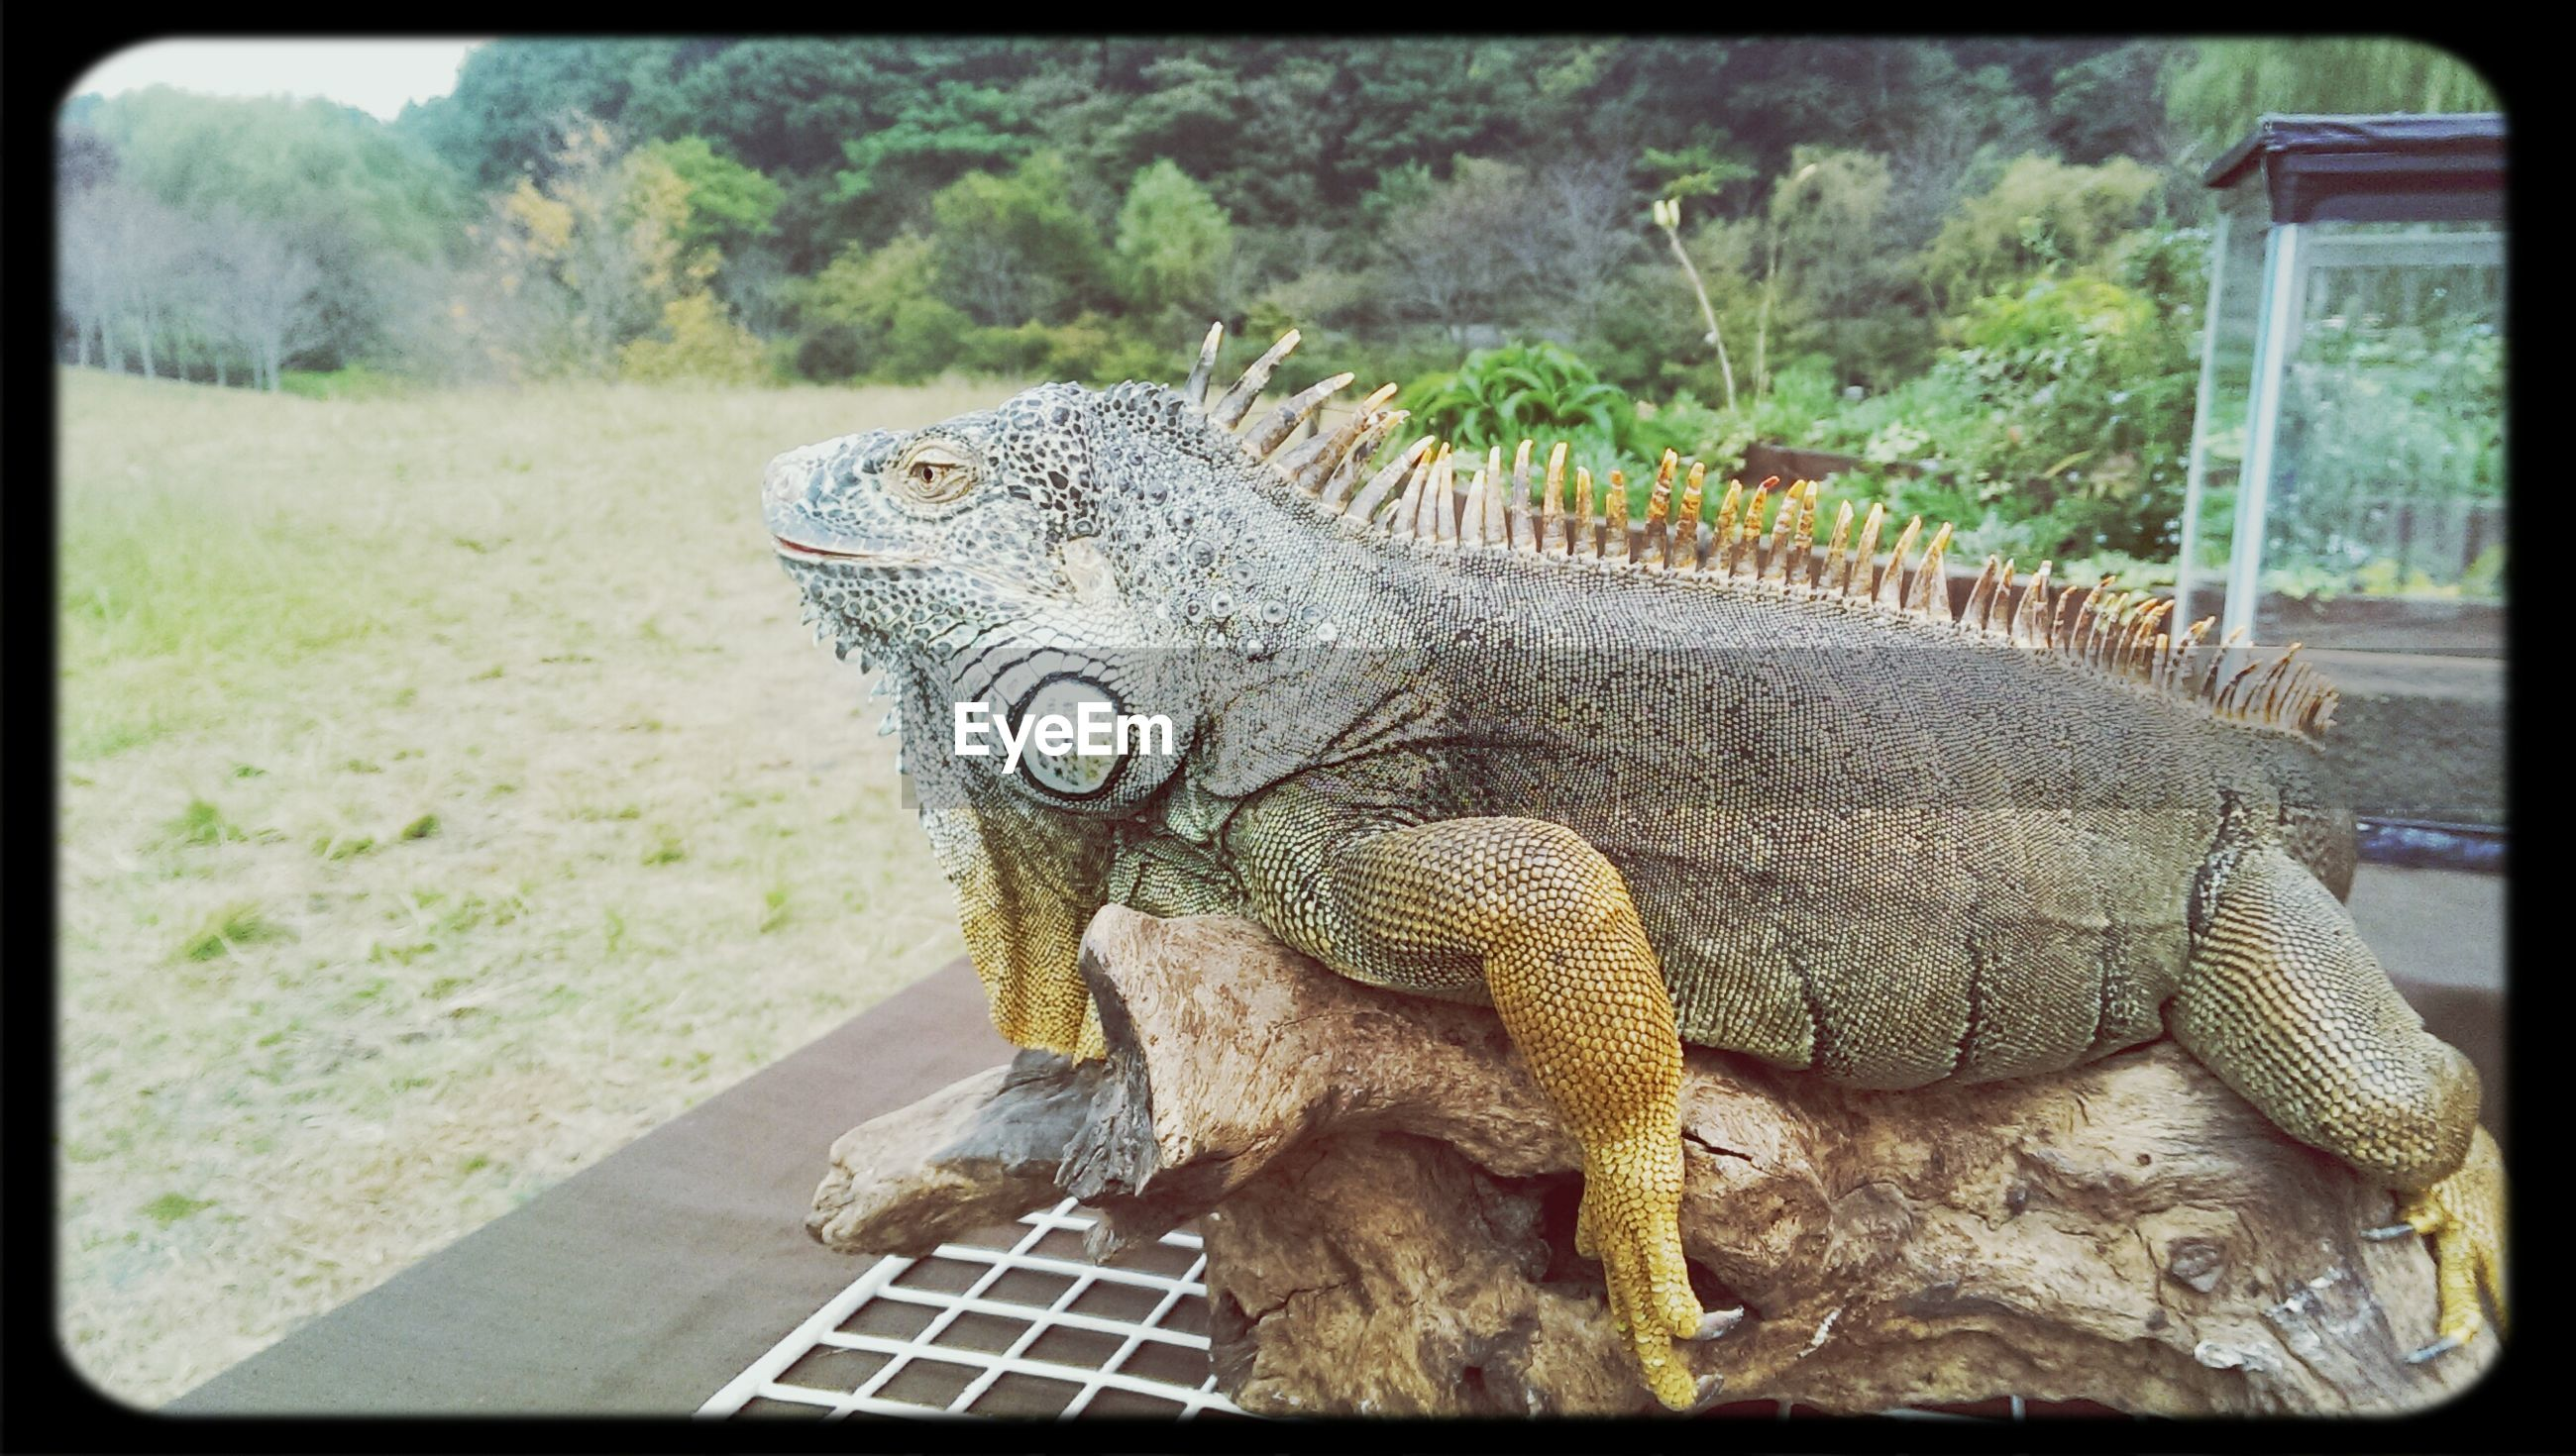 animal themes, one animal, transfer print, animals in the wild, wildlife, auto post production filter, animal head, close-up, animal body part, zoo, mammal, side view, animals in captivity, outdoors, focus on foreground, day, grass, no people, field, nature